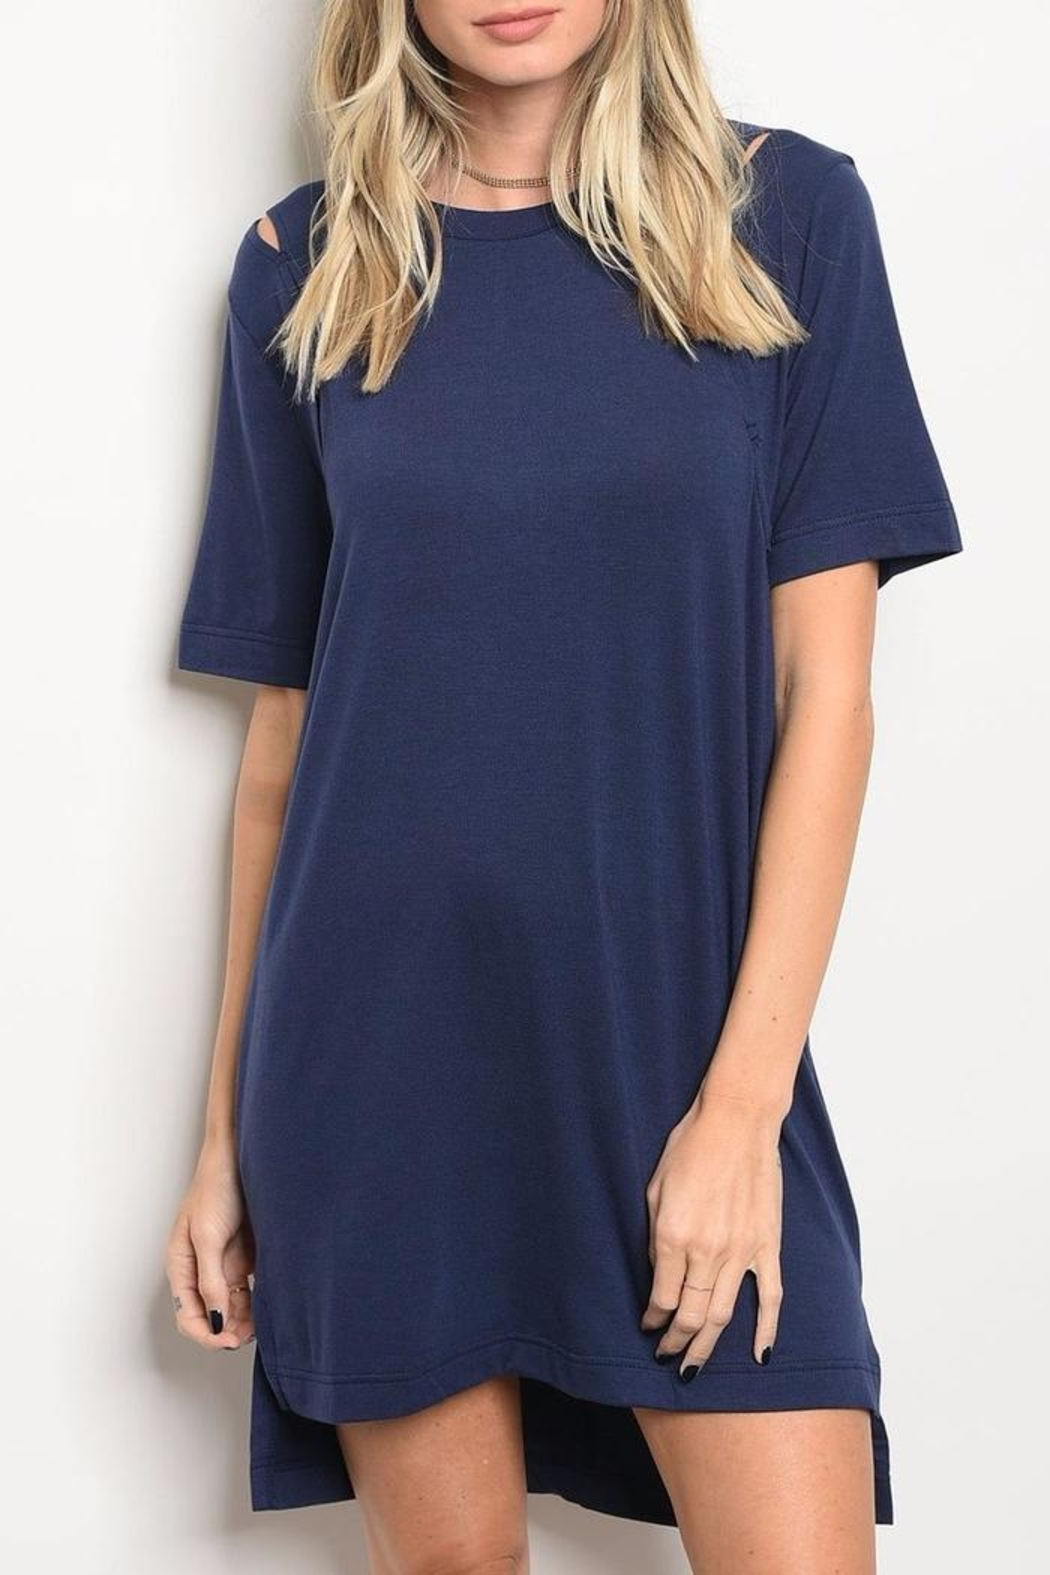 LoveRiche Navy T Shirt Dress - Front Cropped Image